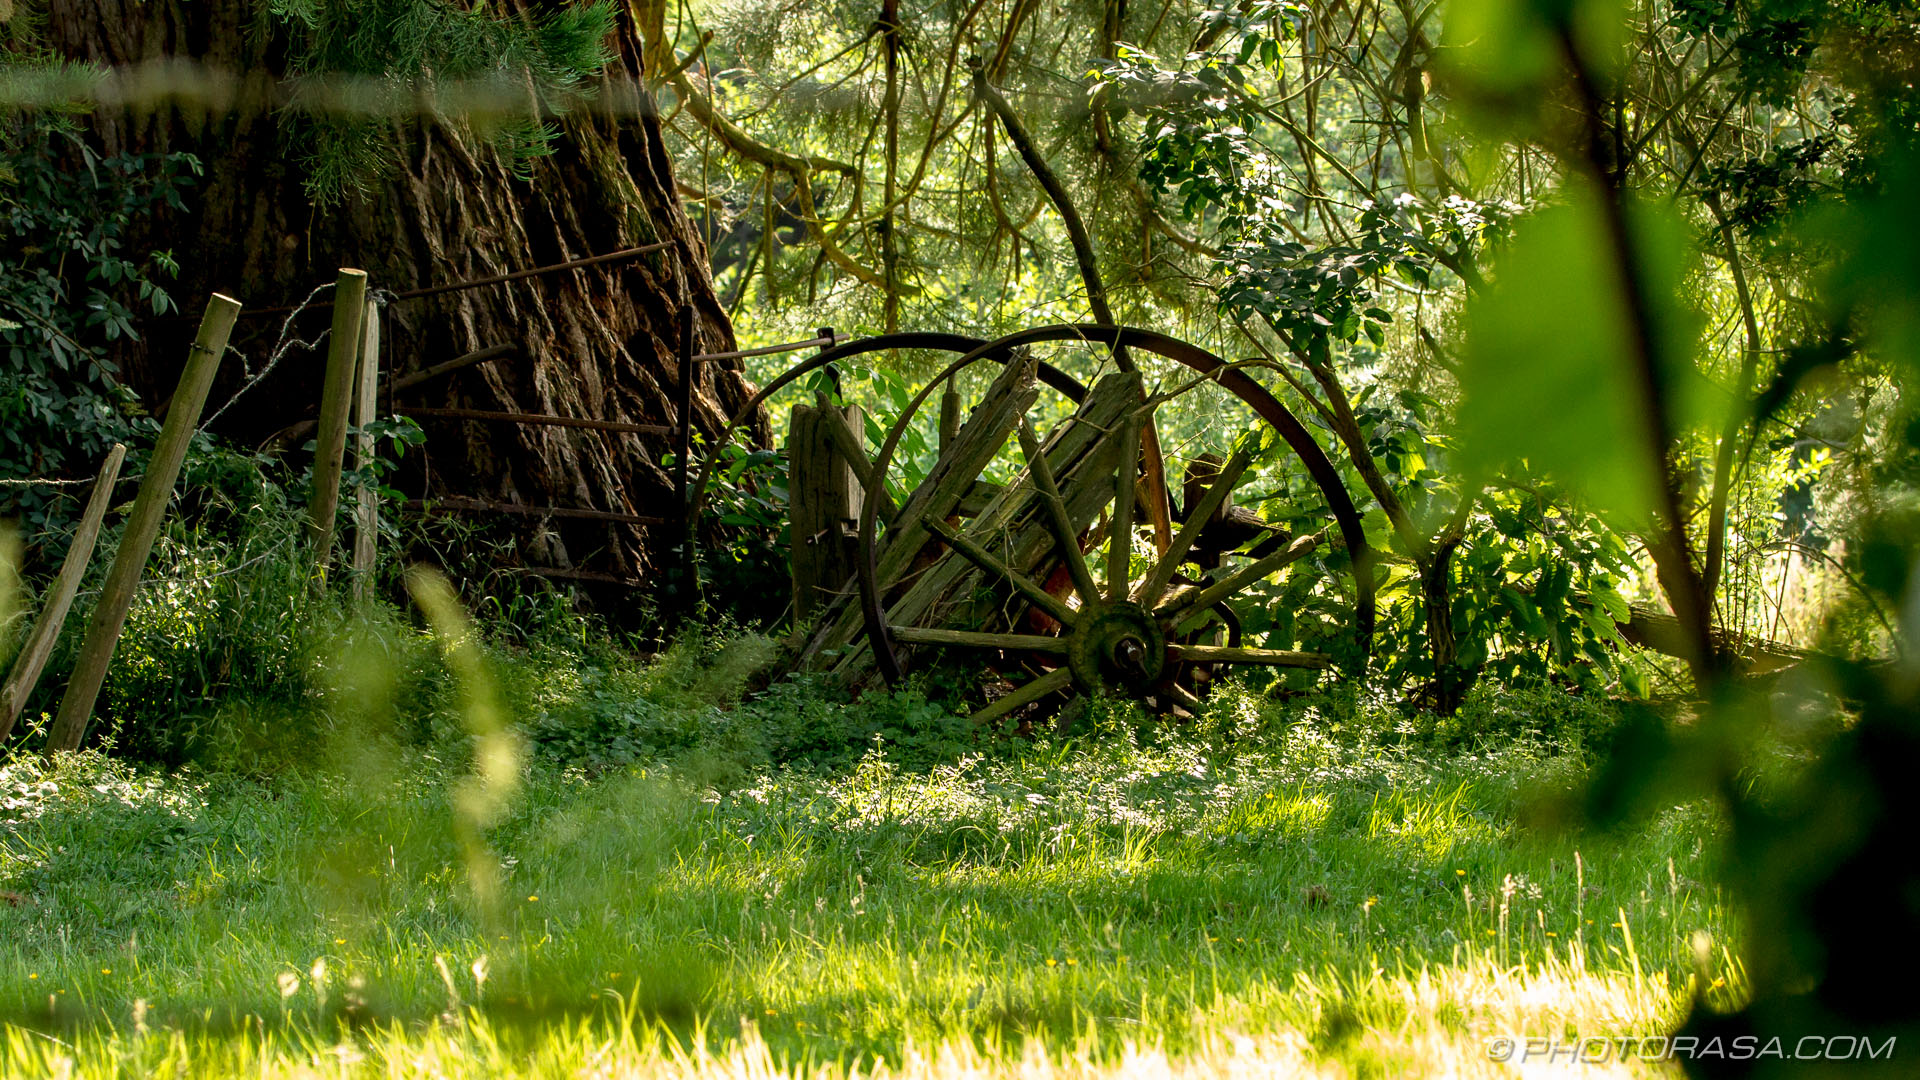 http://photorasa.com/farming/broken-old-cart-2/